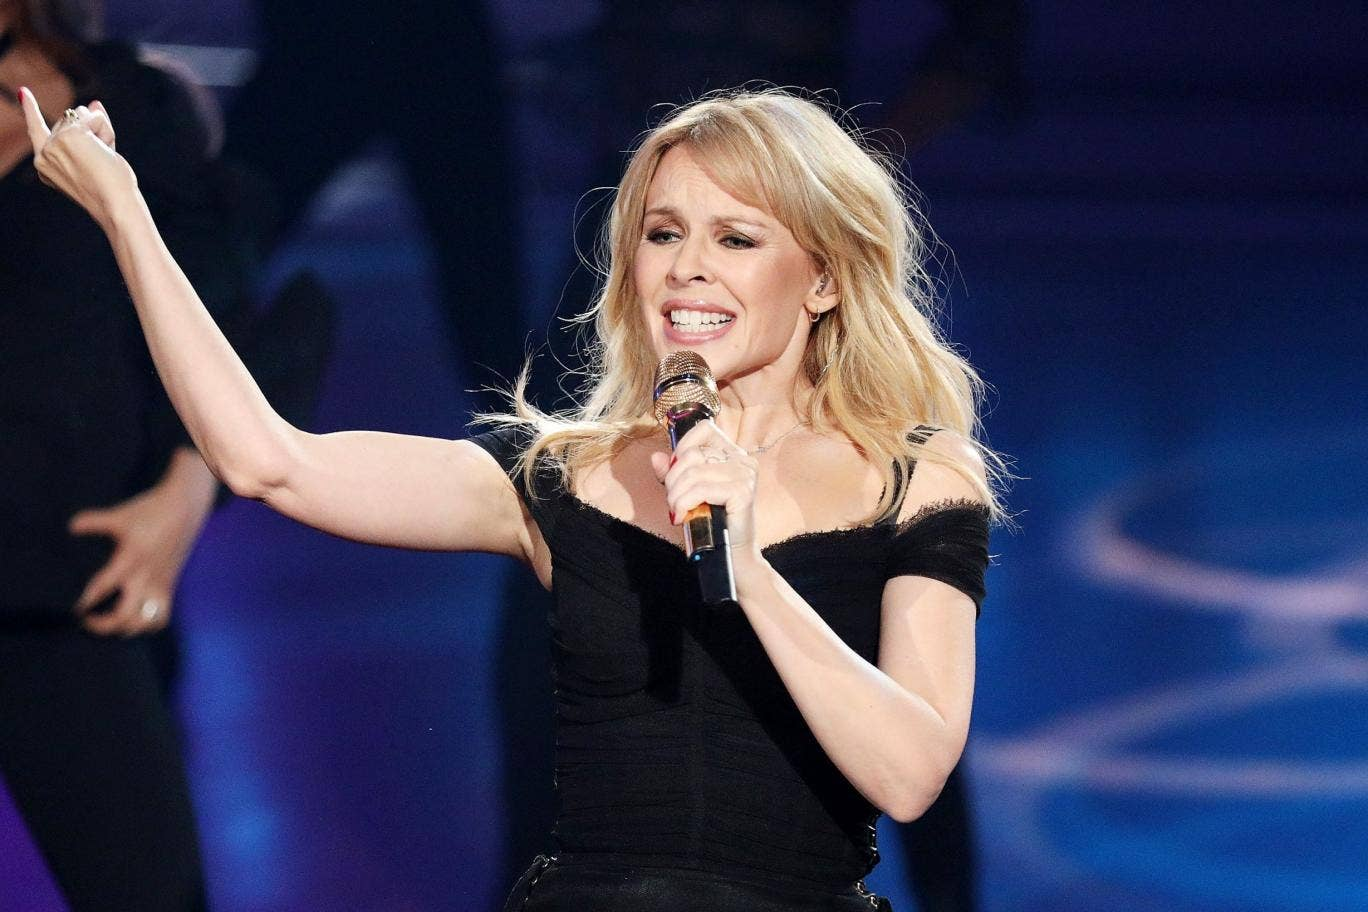 Kylie Minogue cancels world tour on doctor's orders